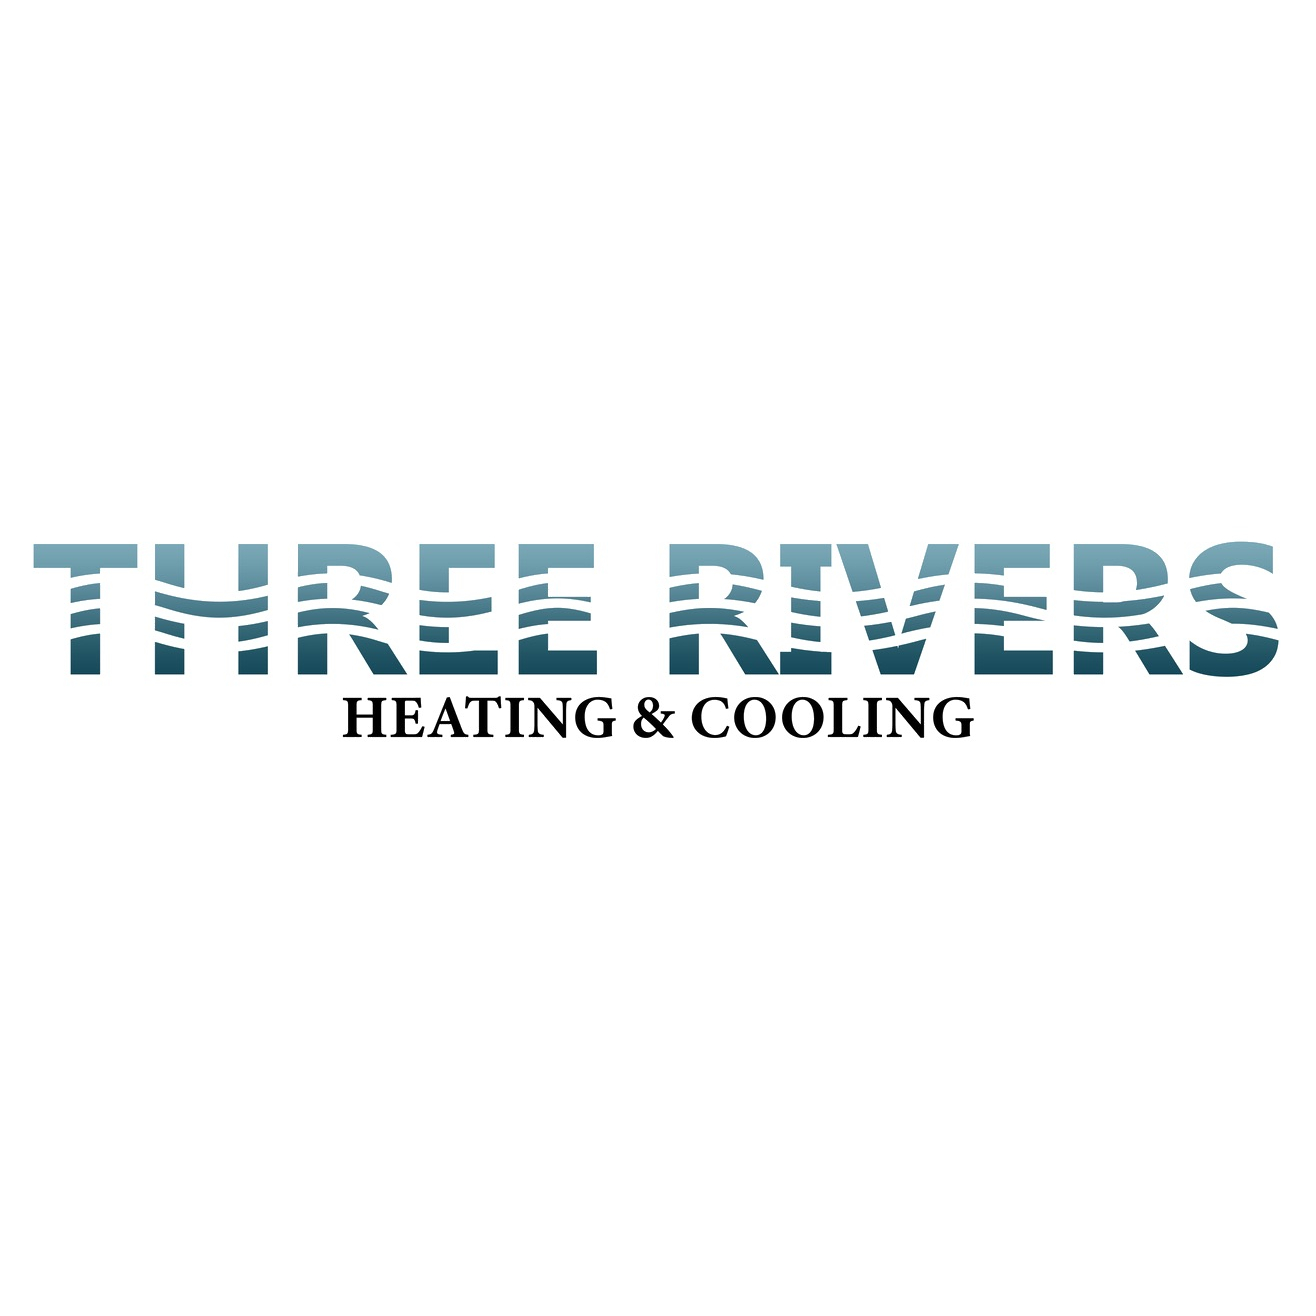 Three Rivers Heating and Cooling